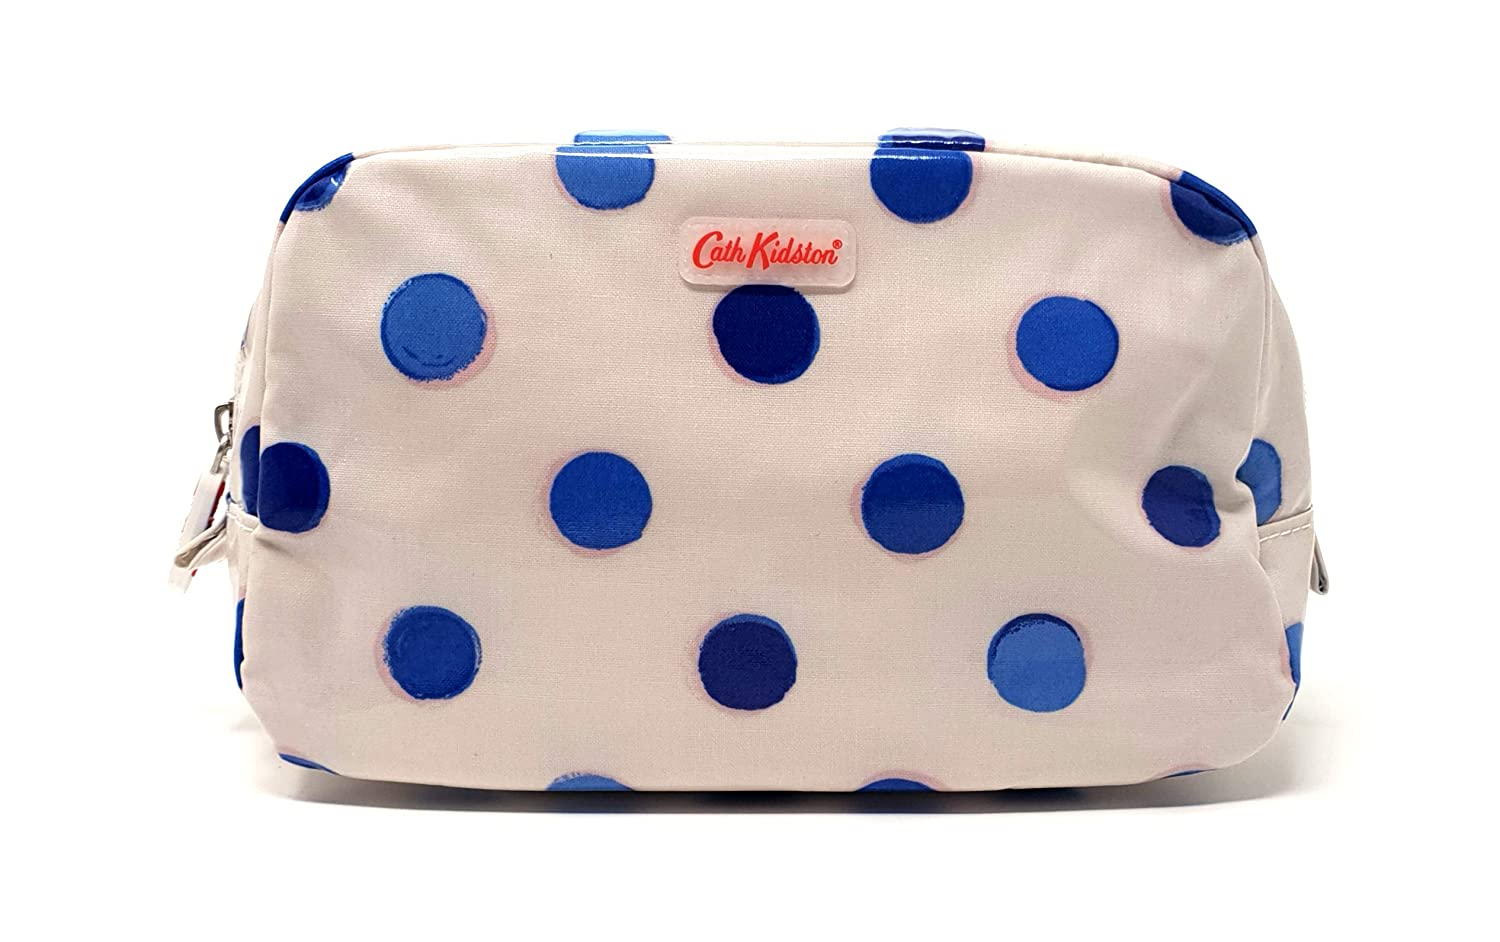 Cath Kidston 'Inky spot' wash Bag, Cosmetic case